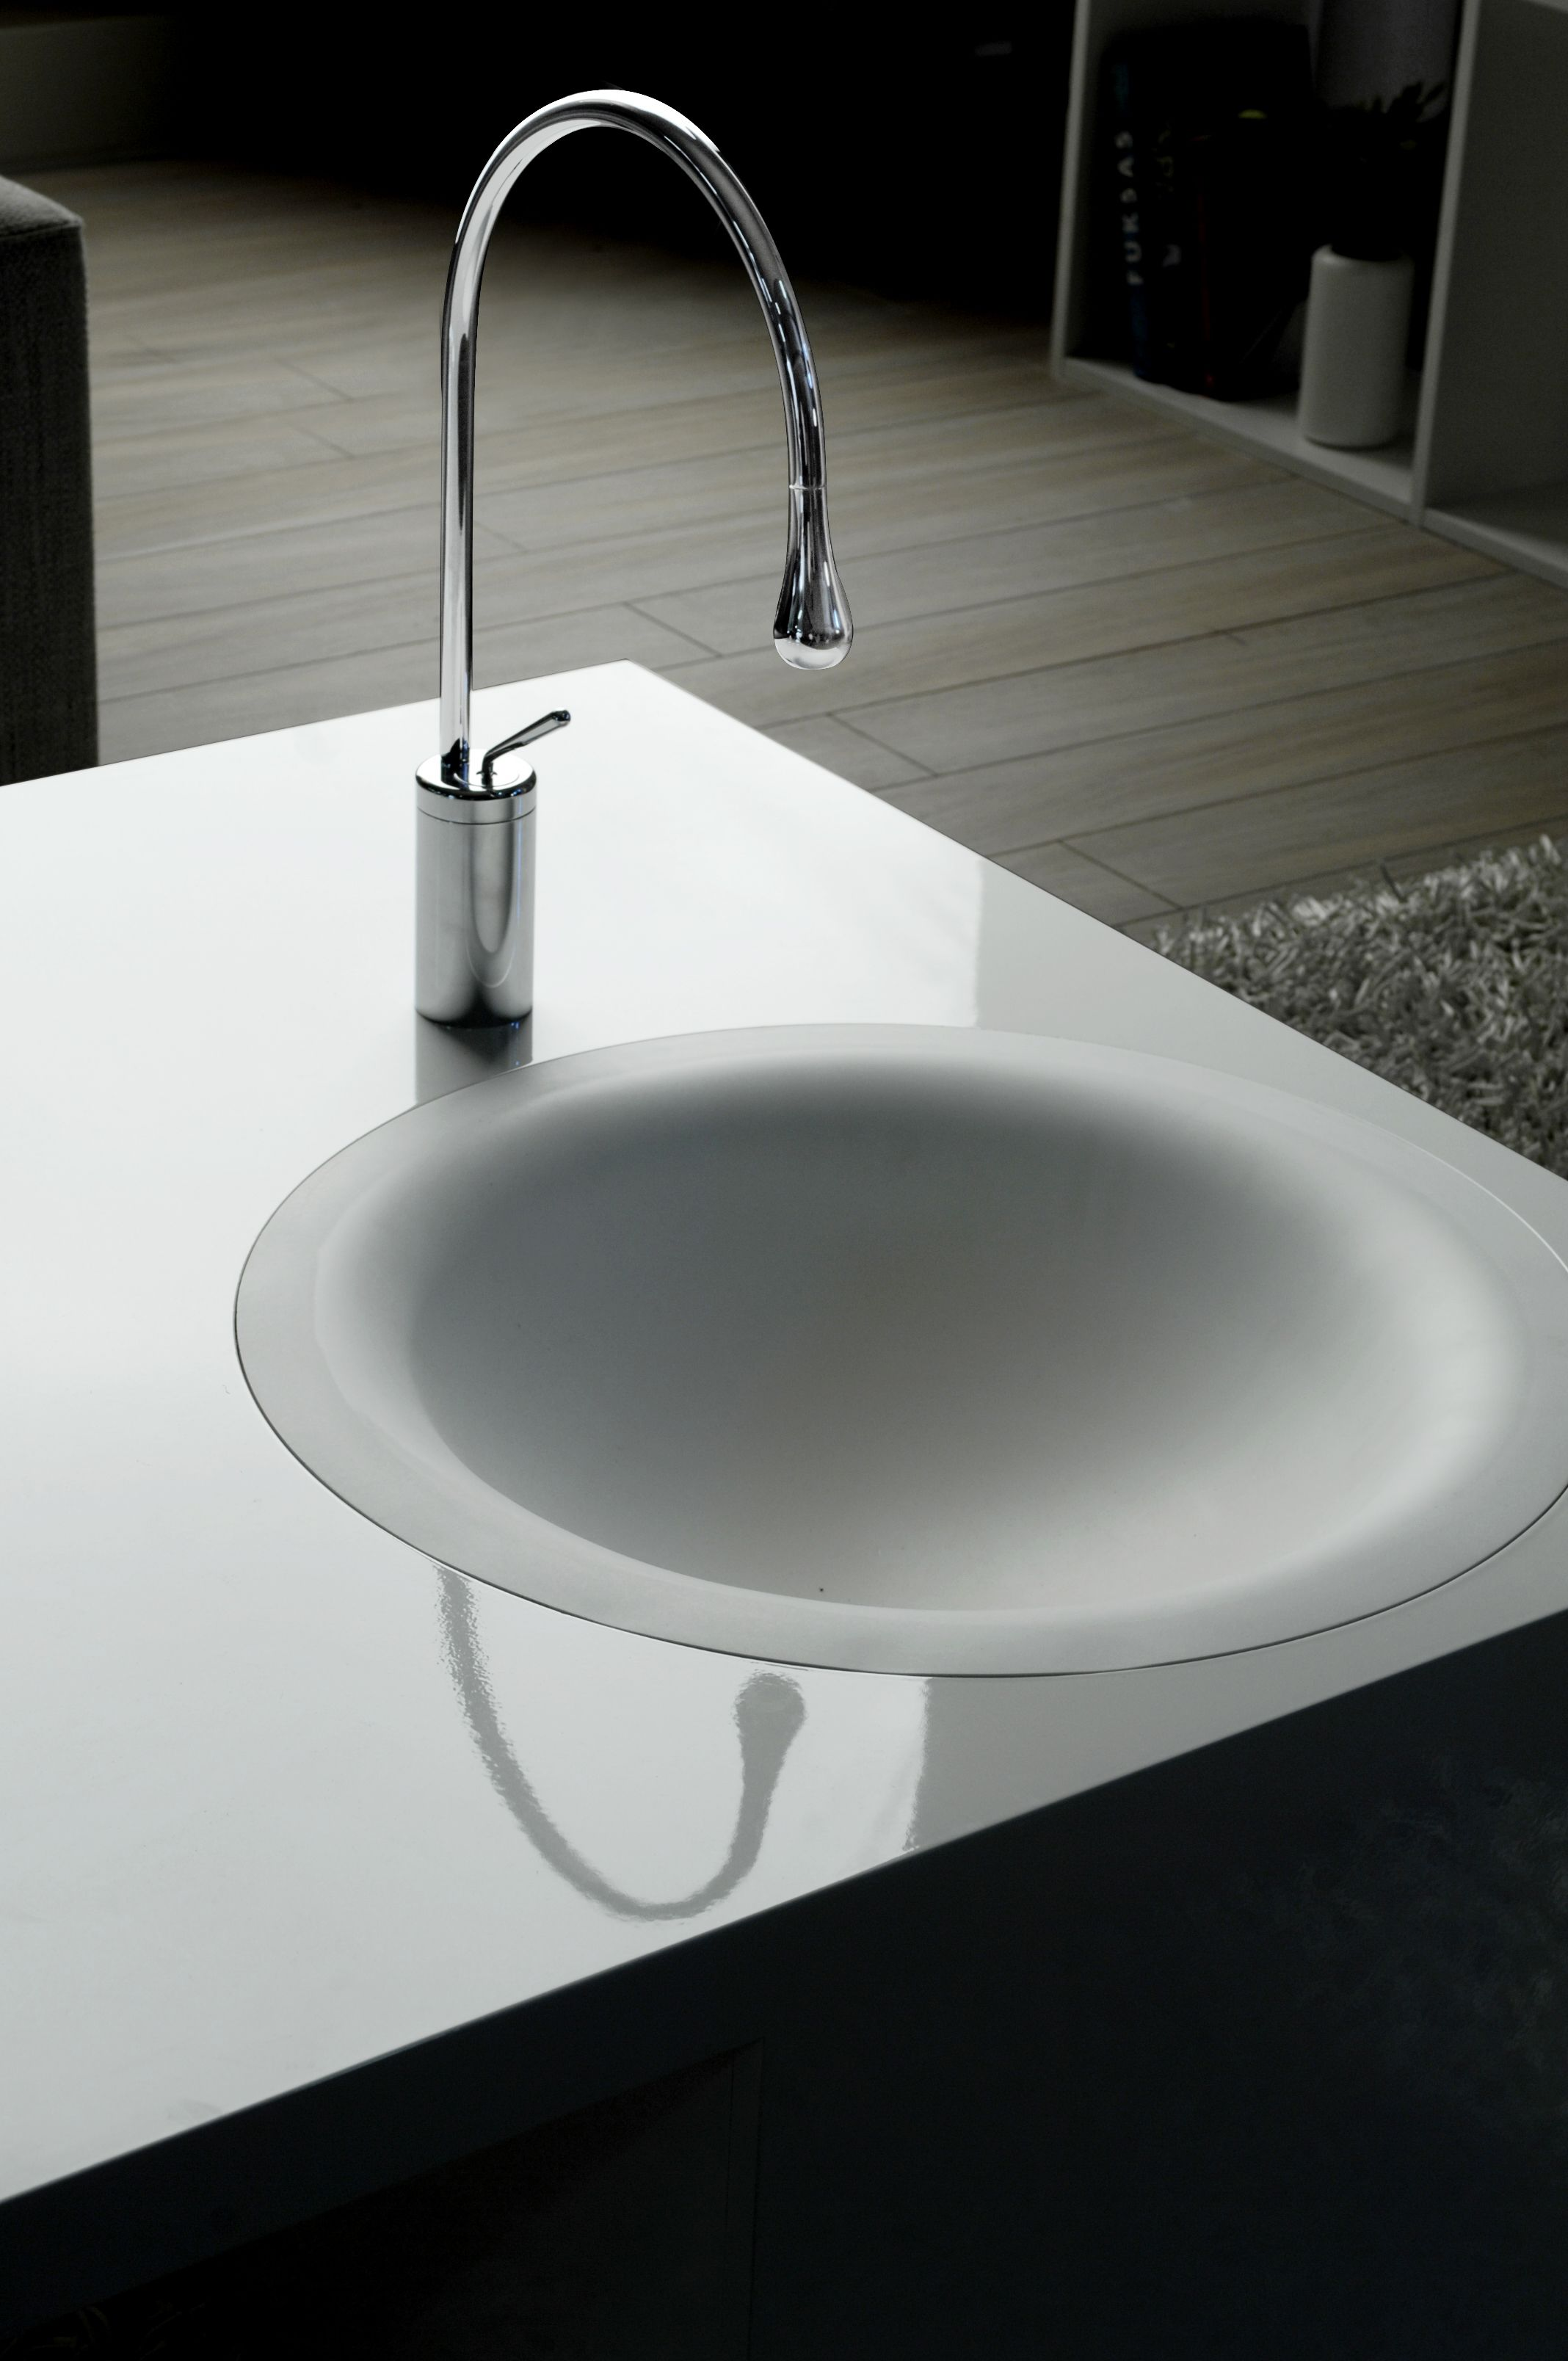 Imagine A Permeable Bowl With No Visible Drain Rather The Water Soaks Through The Surface Bathroom Design Design Basin